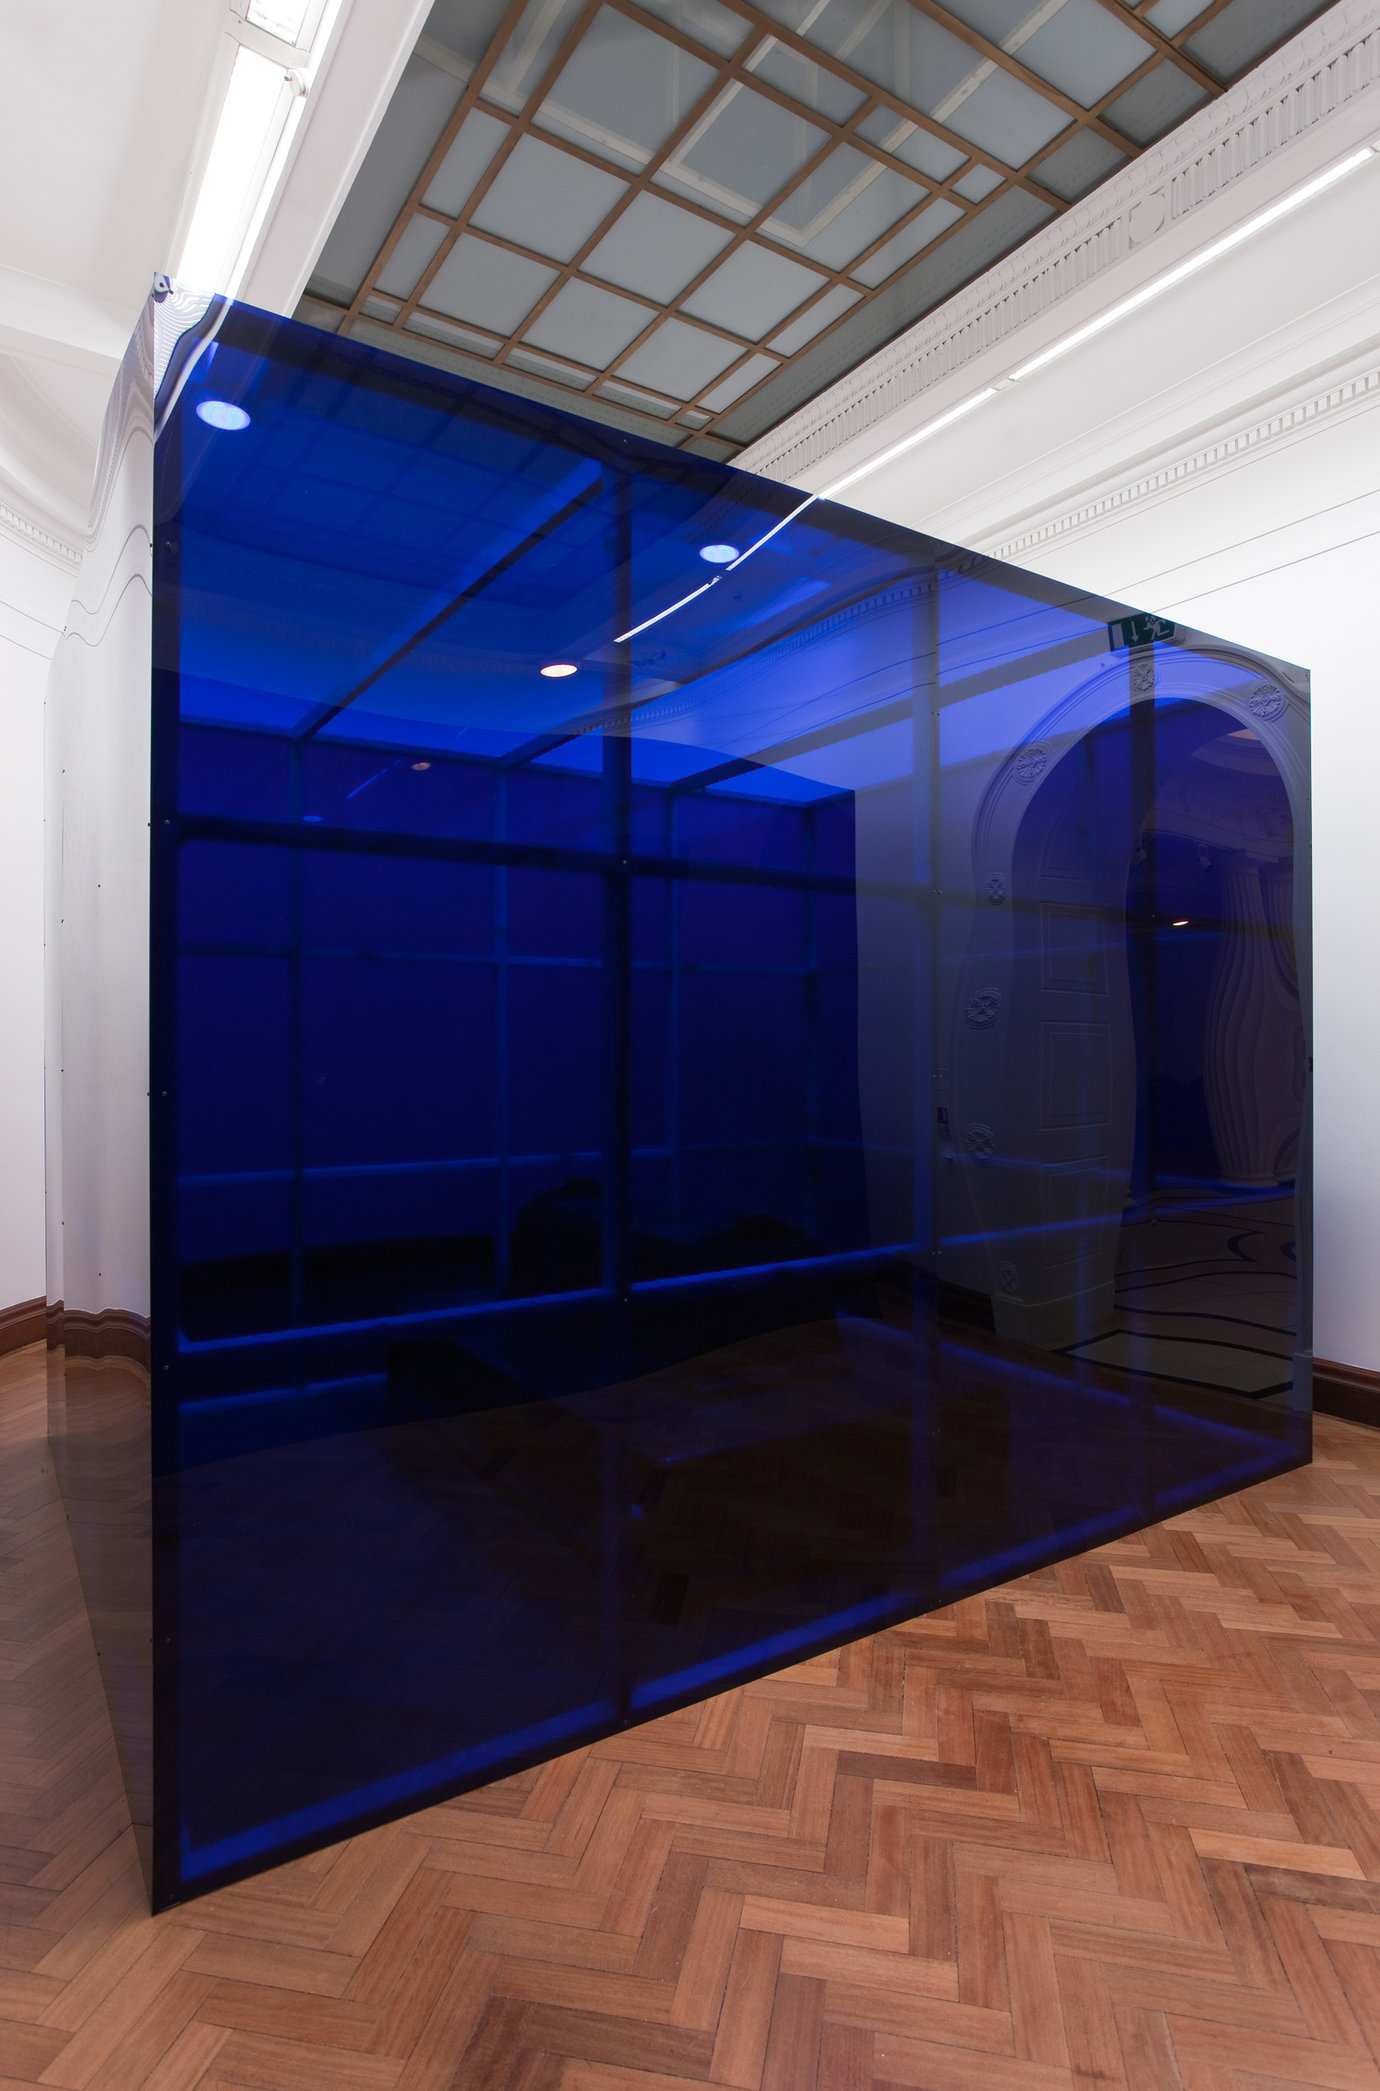 ", 2009. blue plexiglas, timber, site-specific installation10' 1/16"" x 9' 11-7/8"" x 13' 3-13/16"" (305 cm x 304.5 cm x 406 cm), 2 structures, each."